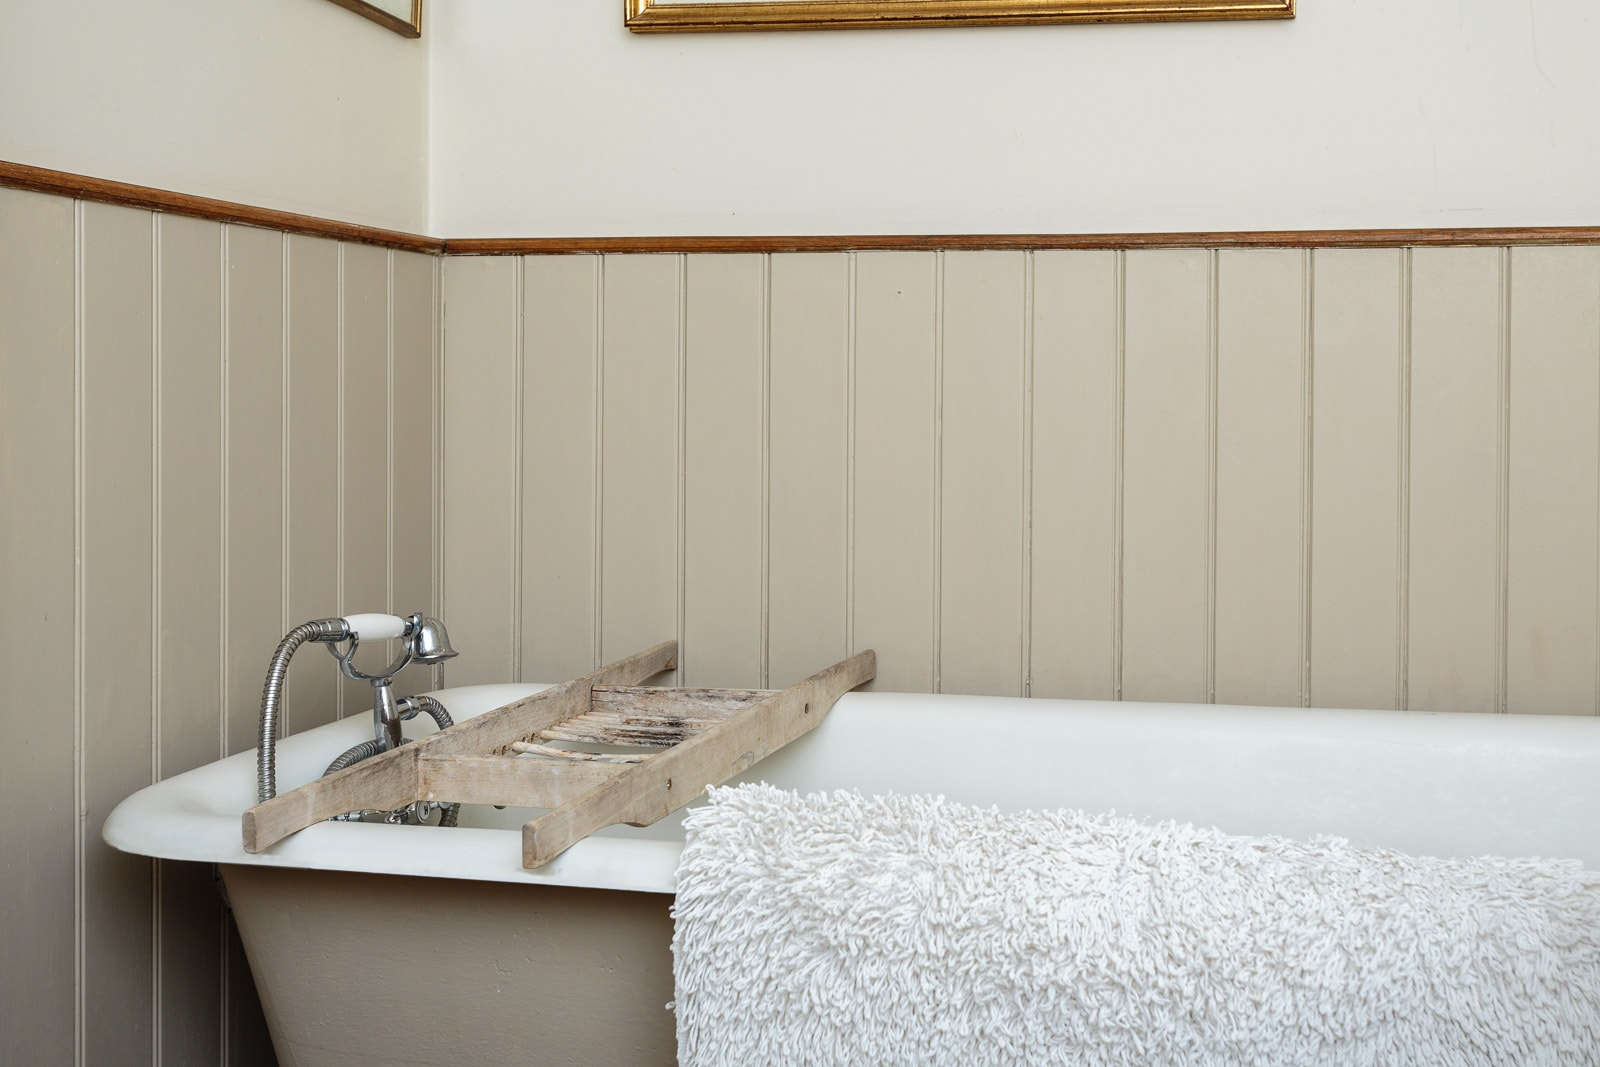 freestanding roll top bath in period bathroom with wooden panels on wall